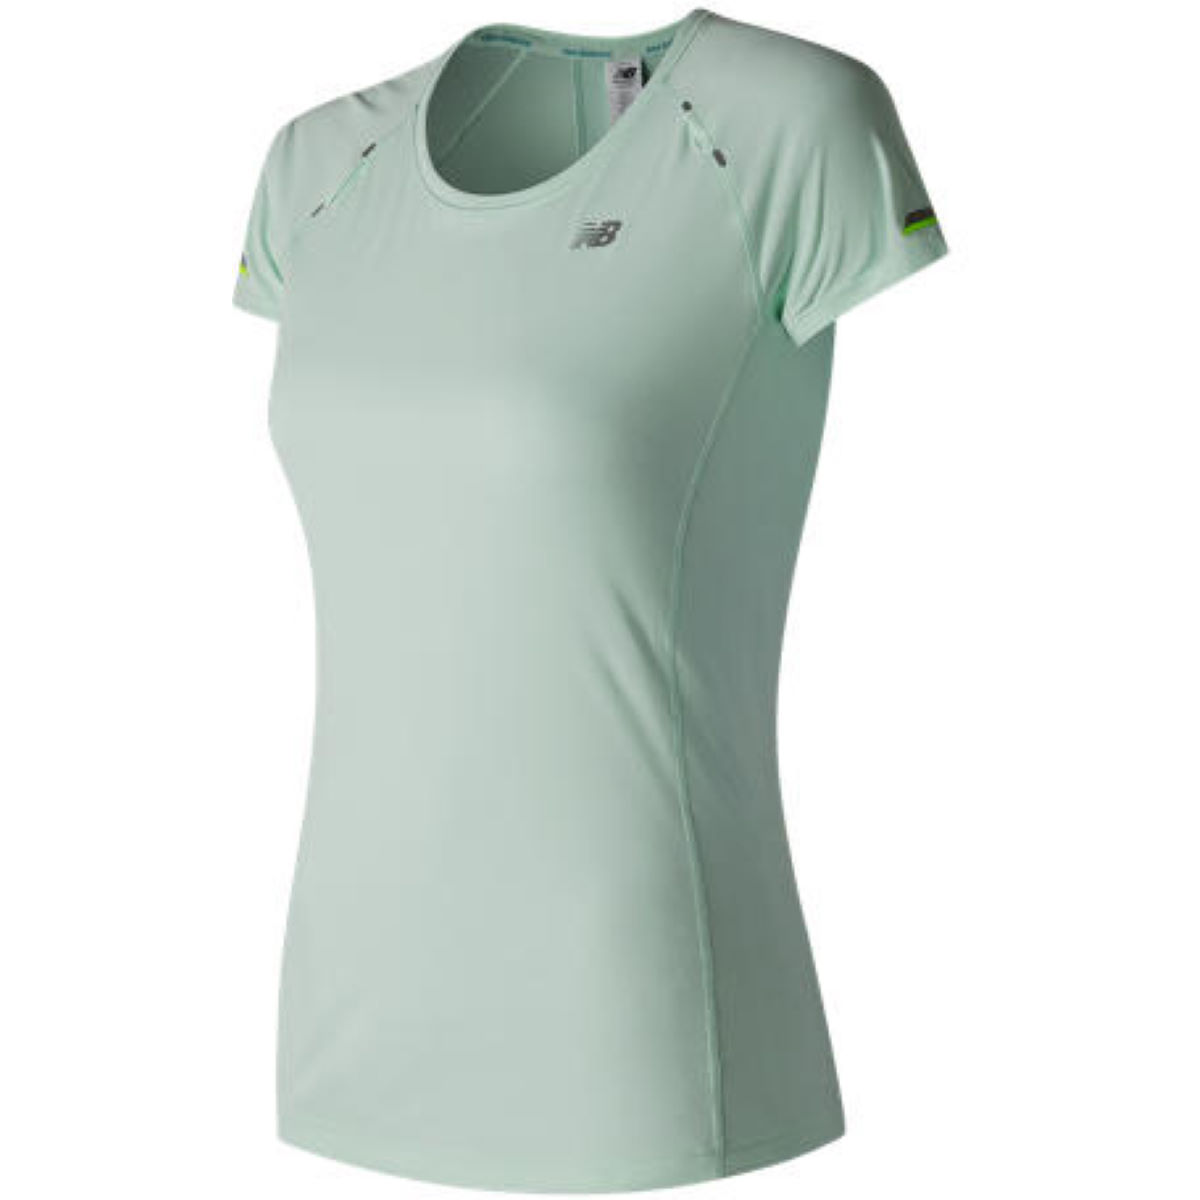 Maillot de running Femme New Balance Ice (manches courtes) - XS